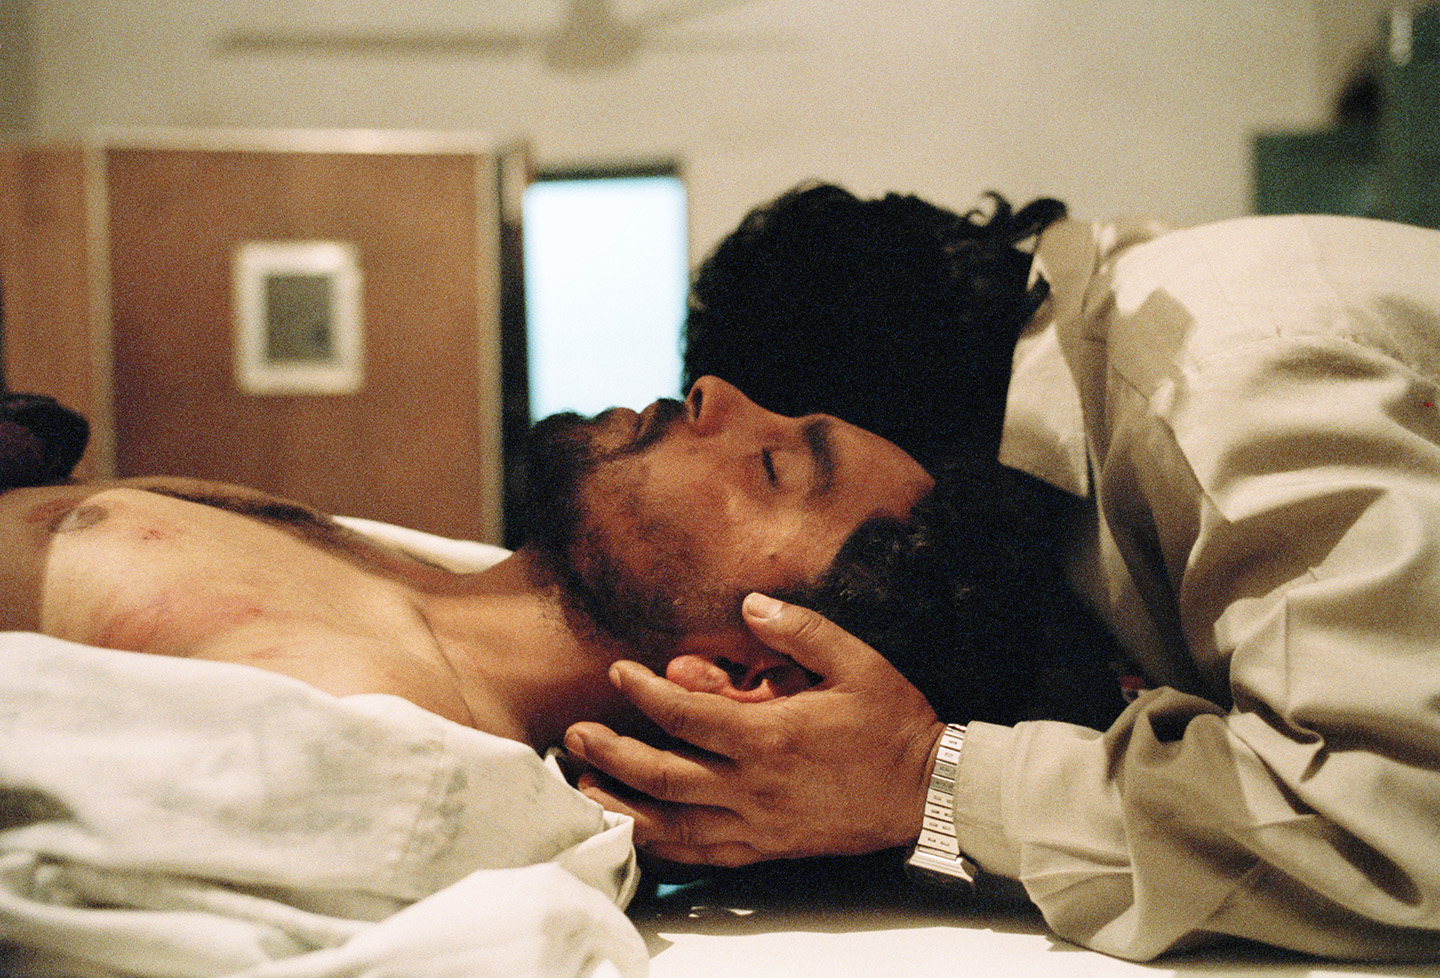 A torture victim is embraced by his brother at a hospital head trauma unit, Kashmir.